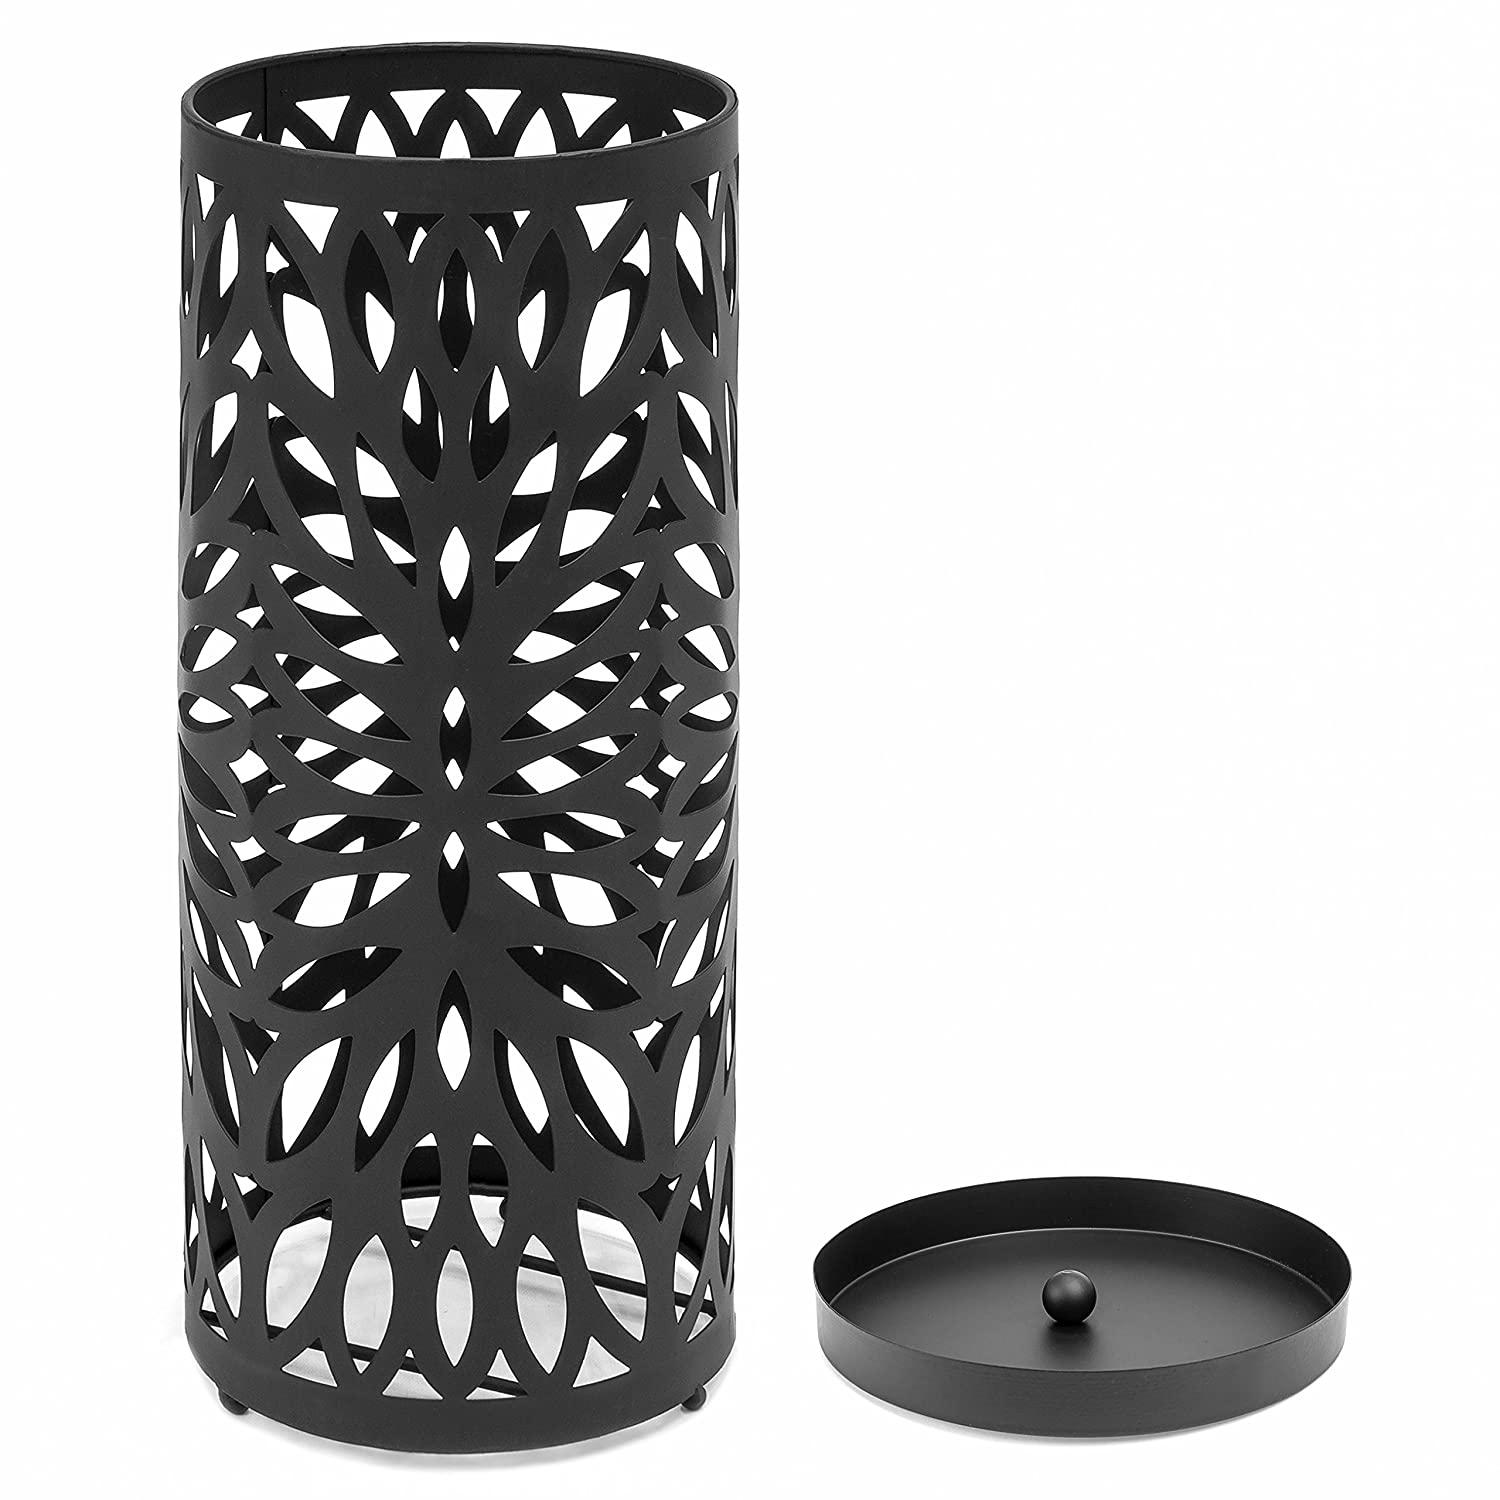 Best Choice Products Modern Spherical Metal Entryway Umbrella Storage Stand with 2 Hooks Black Drain Tray Floor Protection